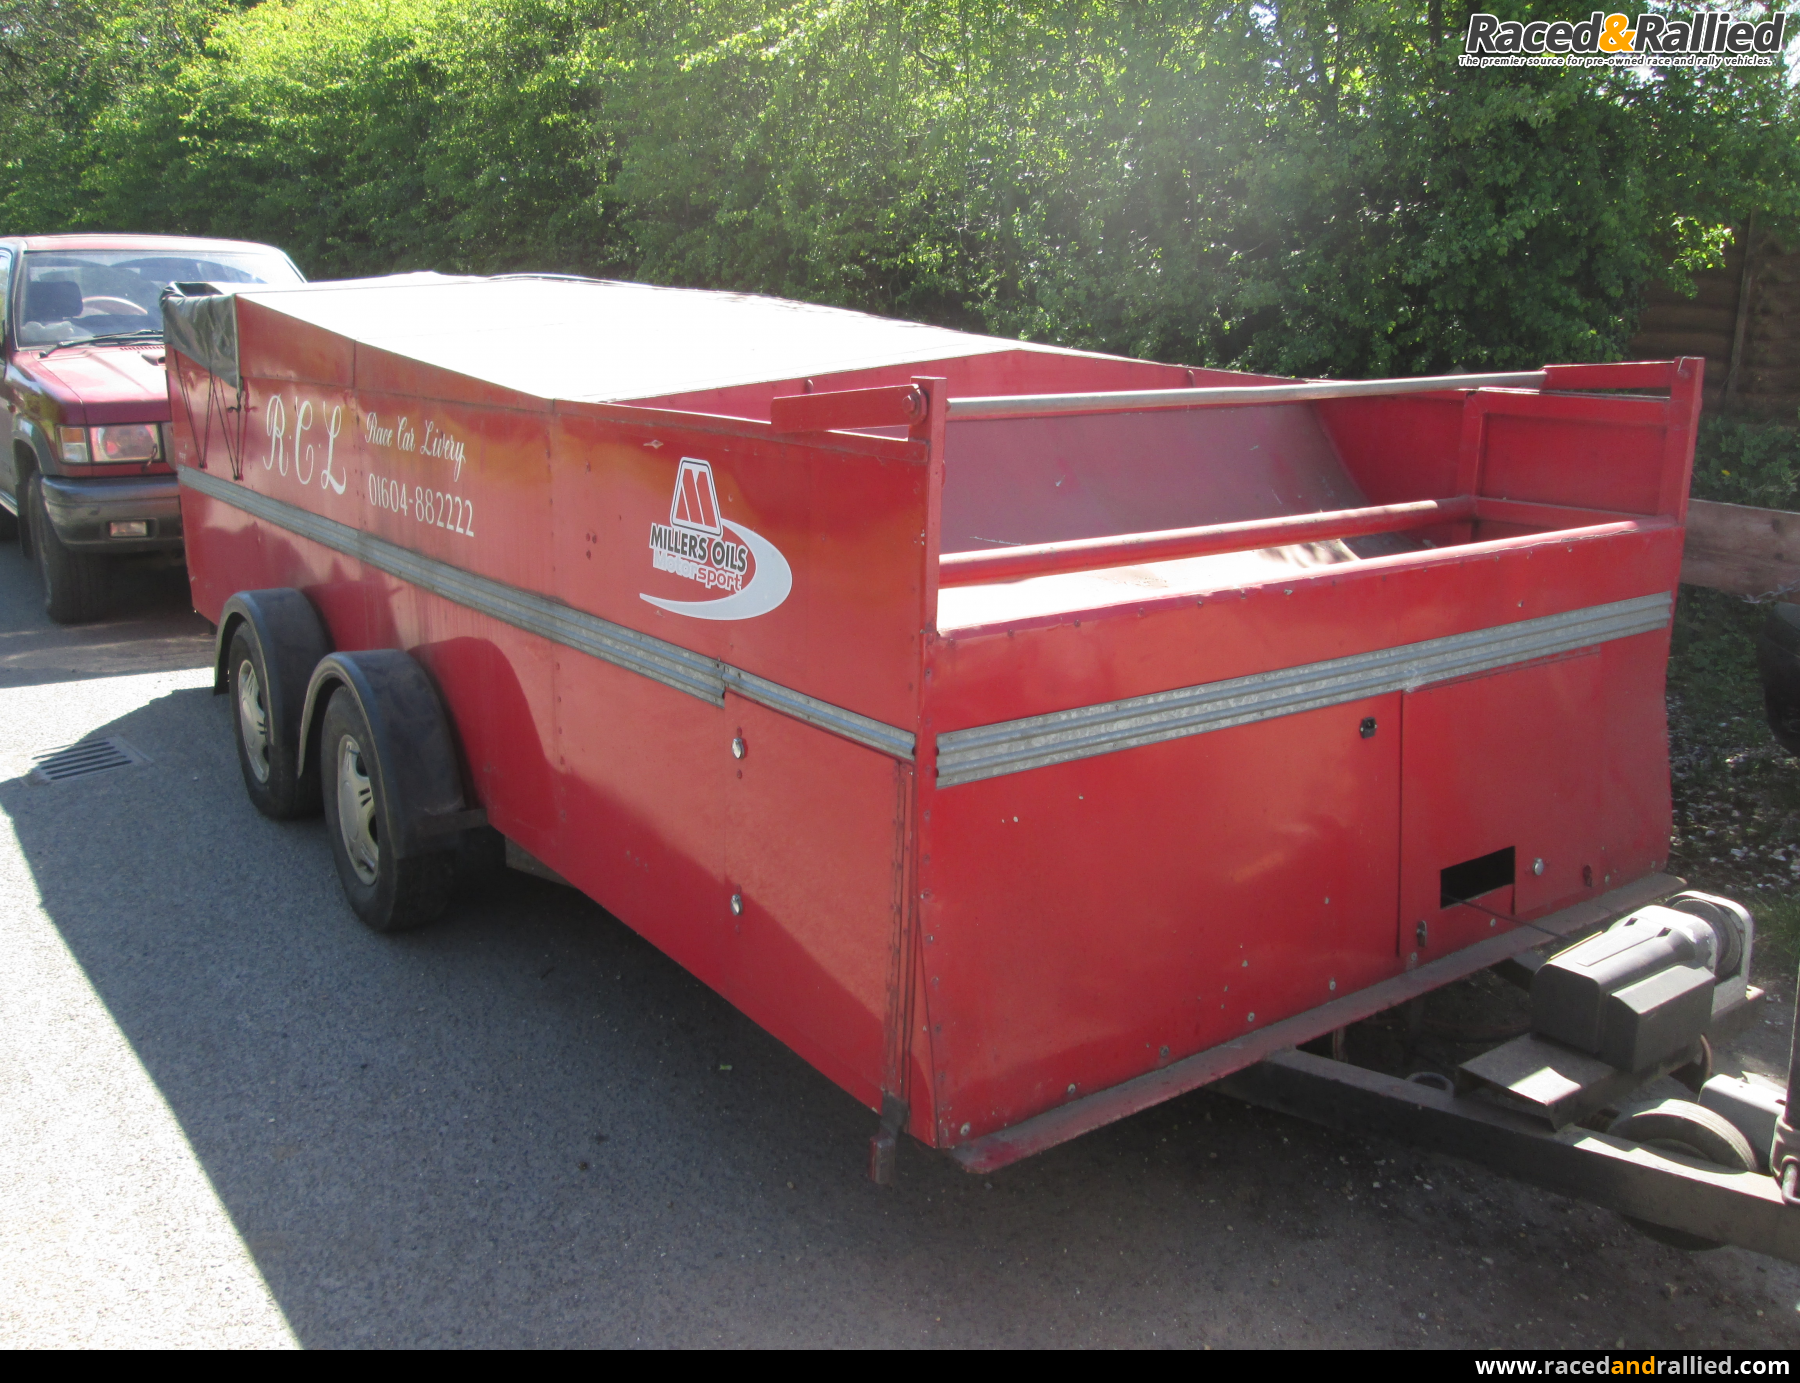 Trailer Bike Rack >> RACE CAR TRAILER | Trailers & Transporters for sale at Raced & Rallied | rally cars for sale ...